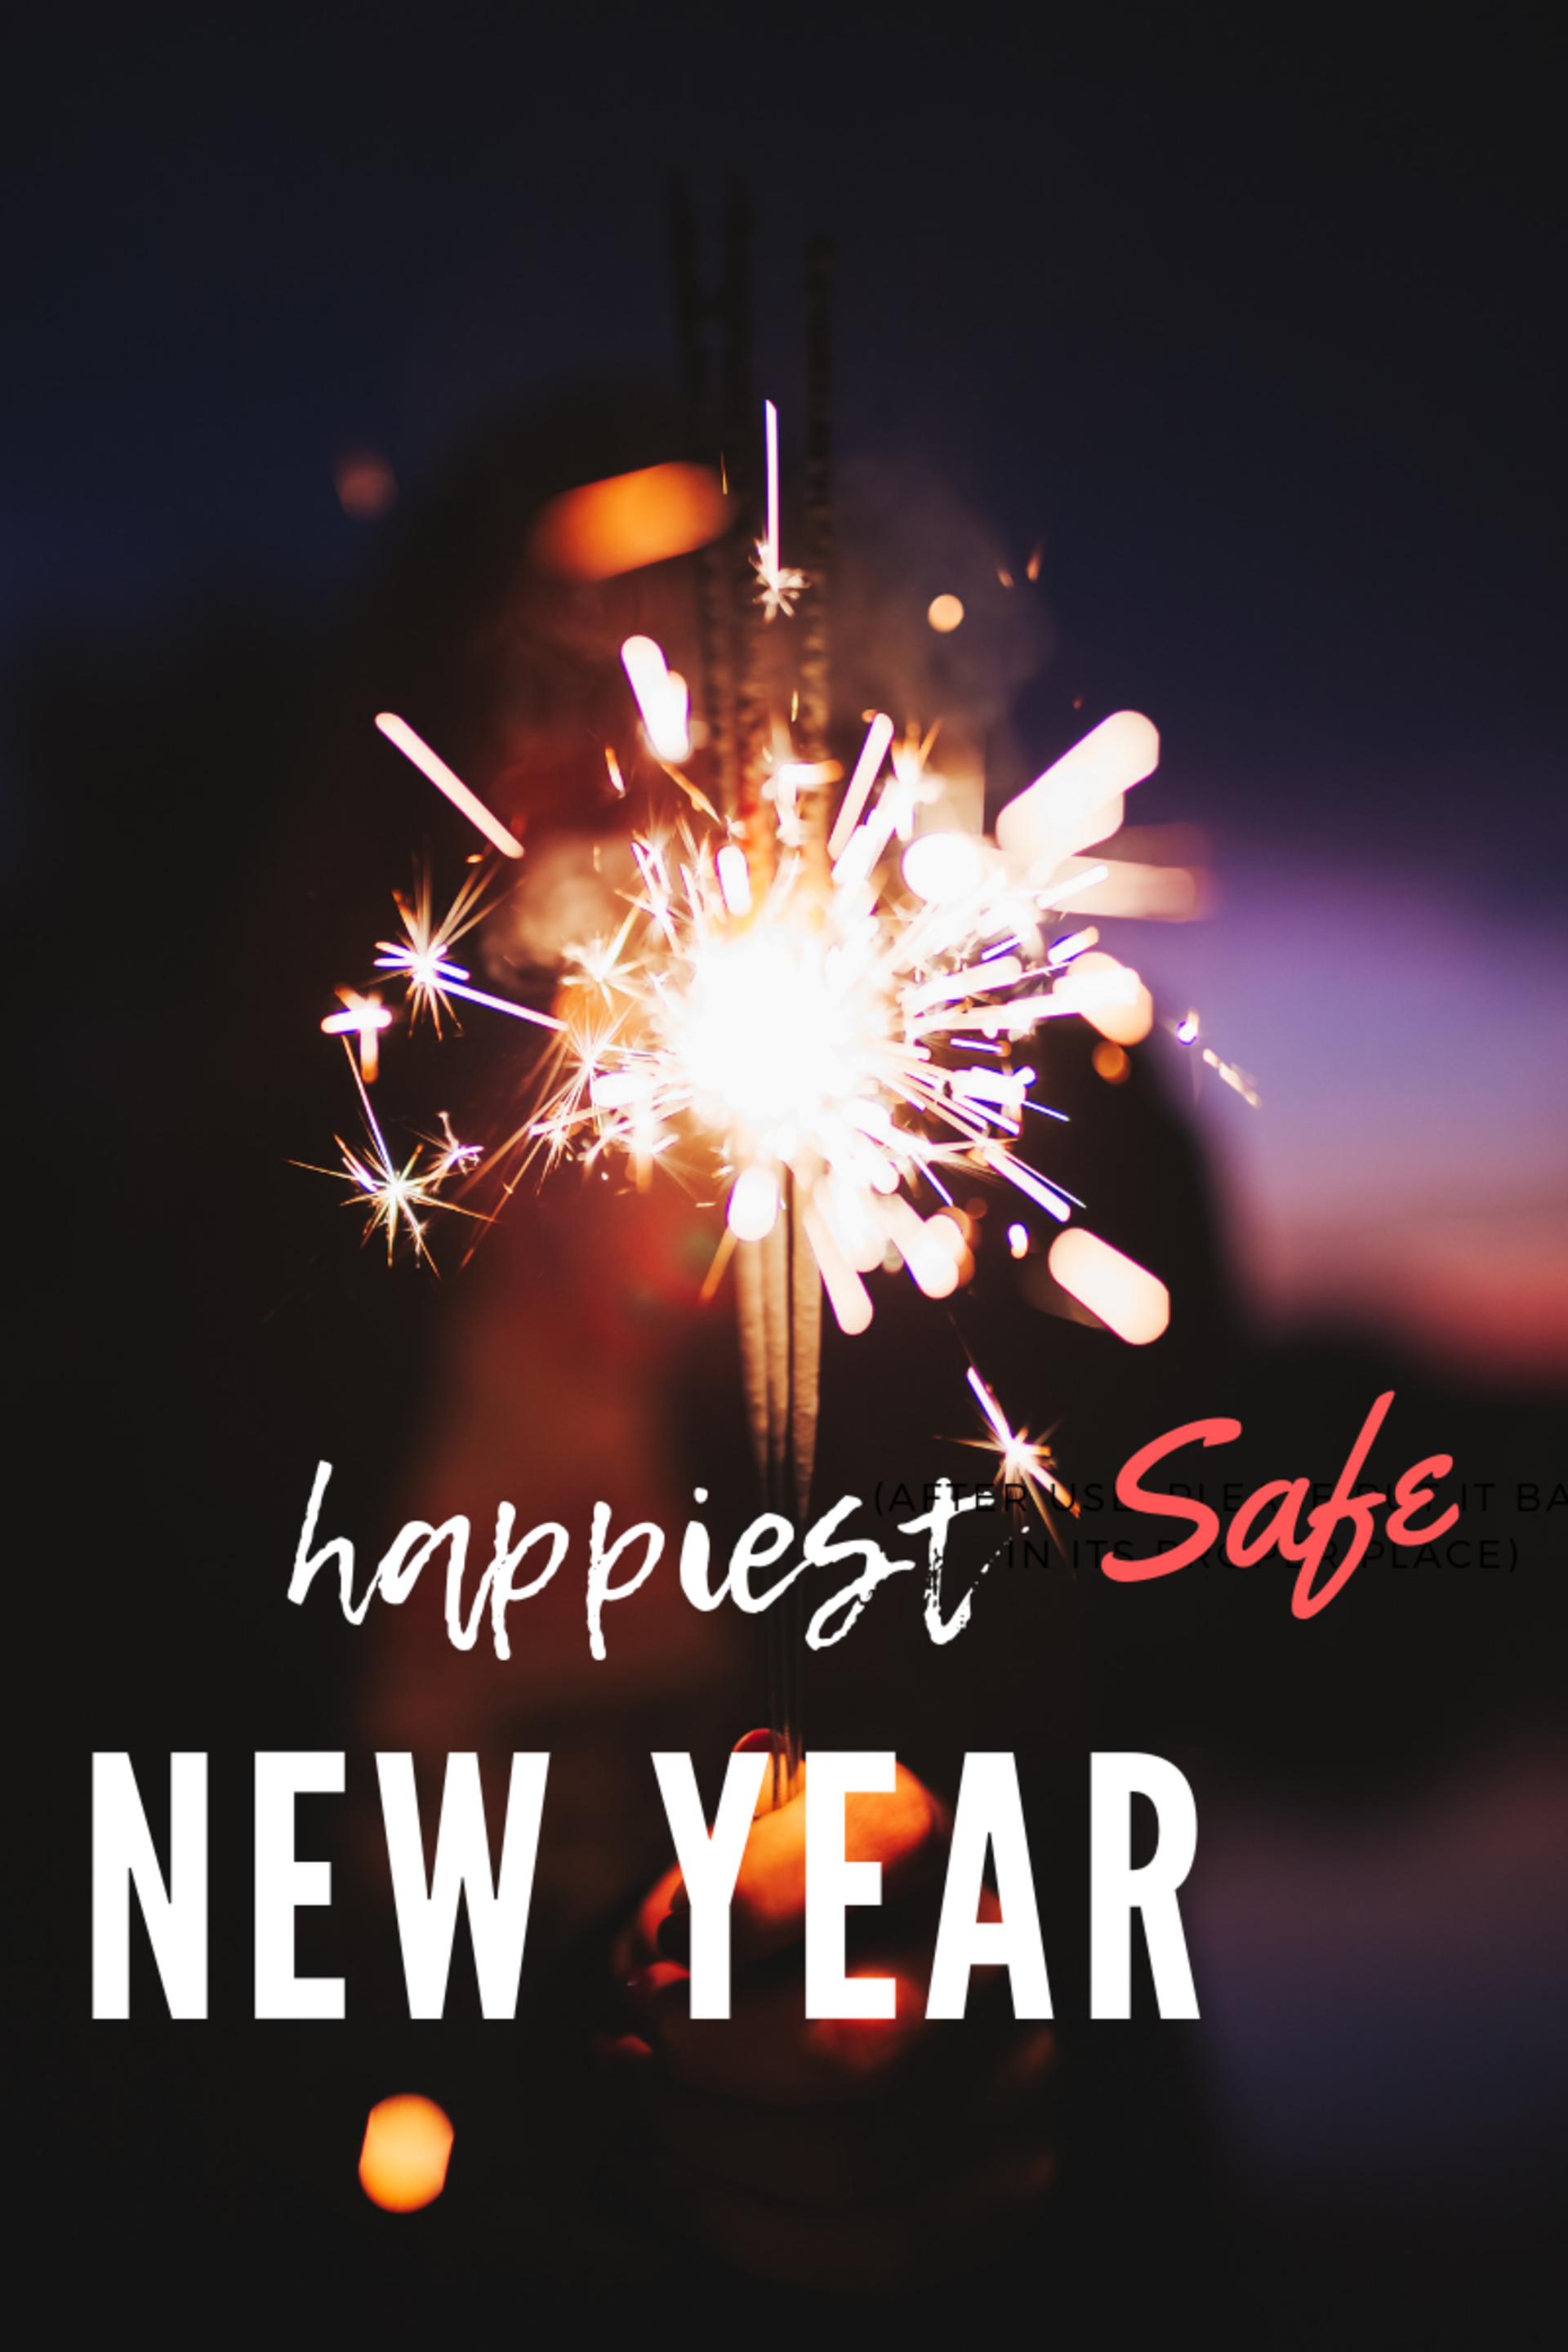 3 New Year's Tips to Keep Your Home Safe!